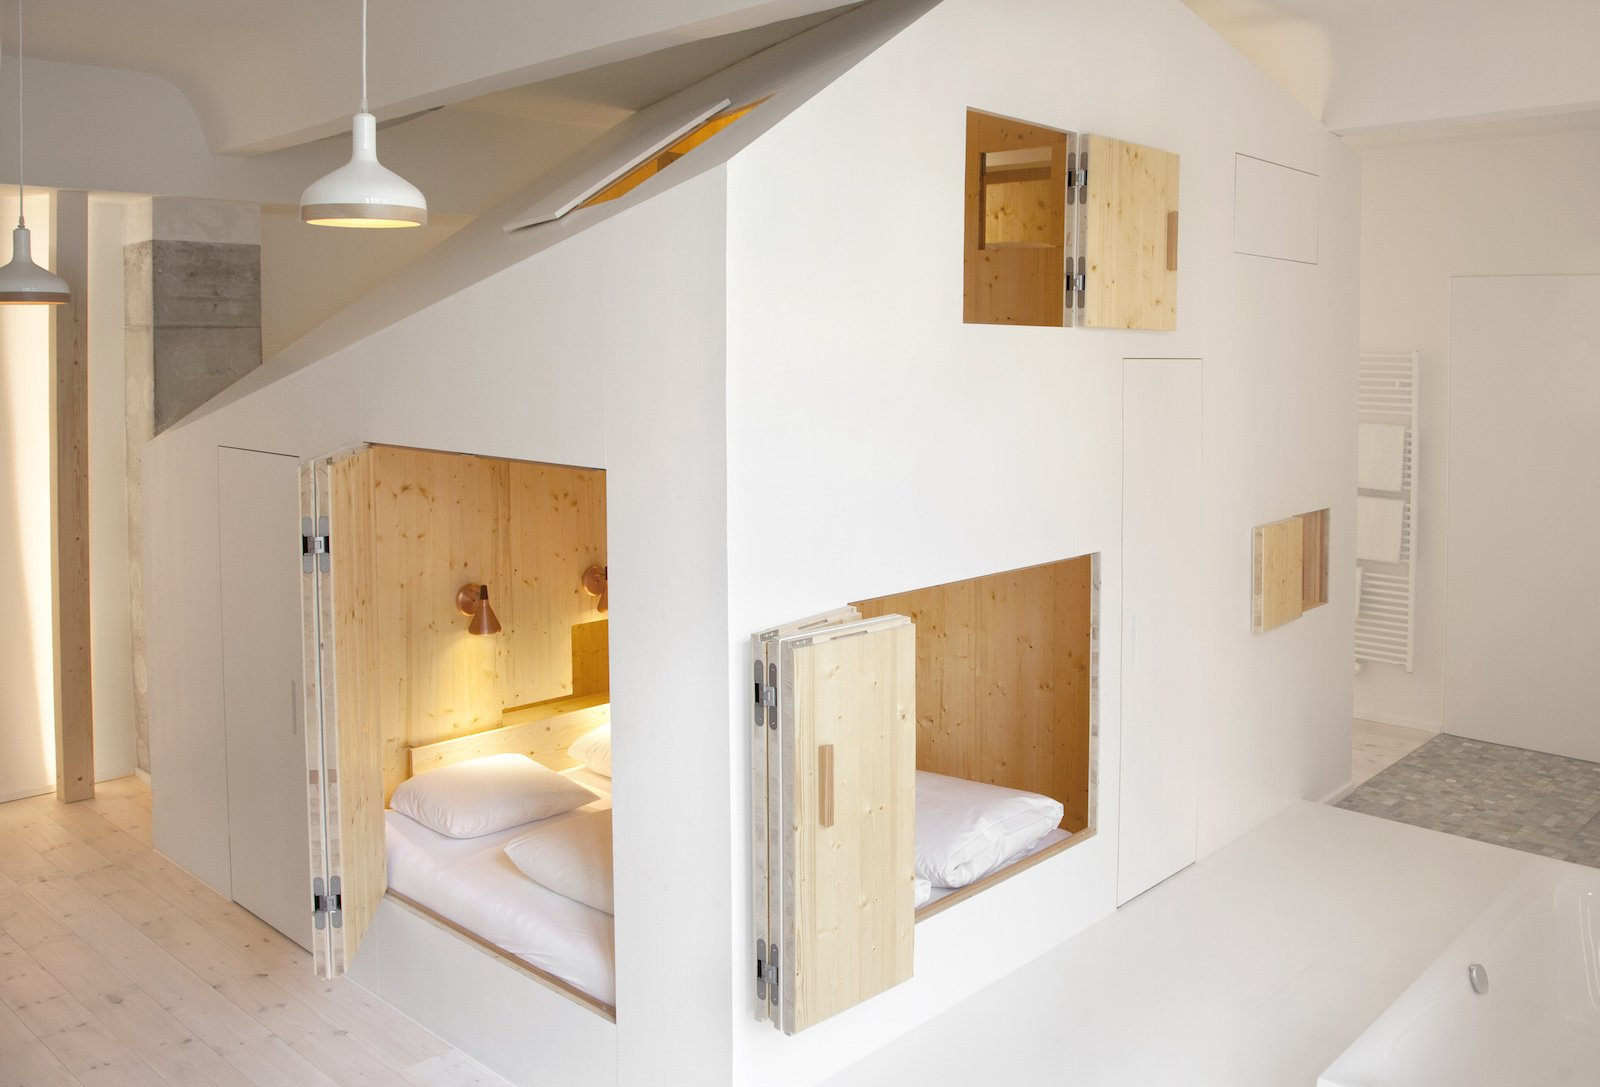 Stoke Your Imagination With This Playhouse-Like Suite in Berlin - Dwell